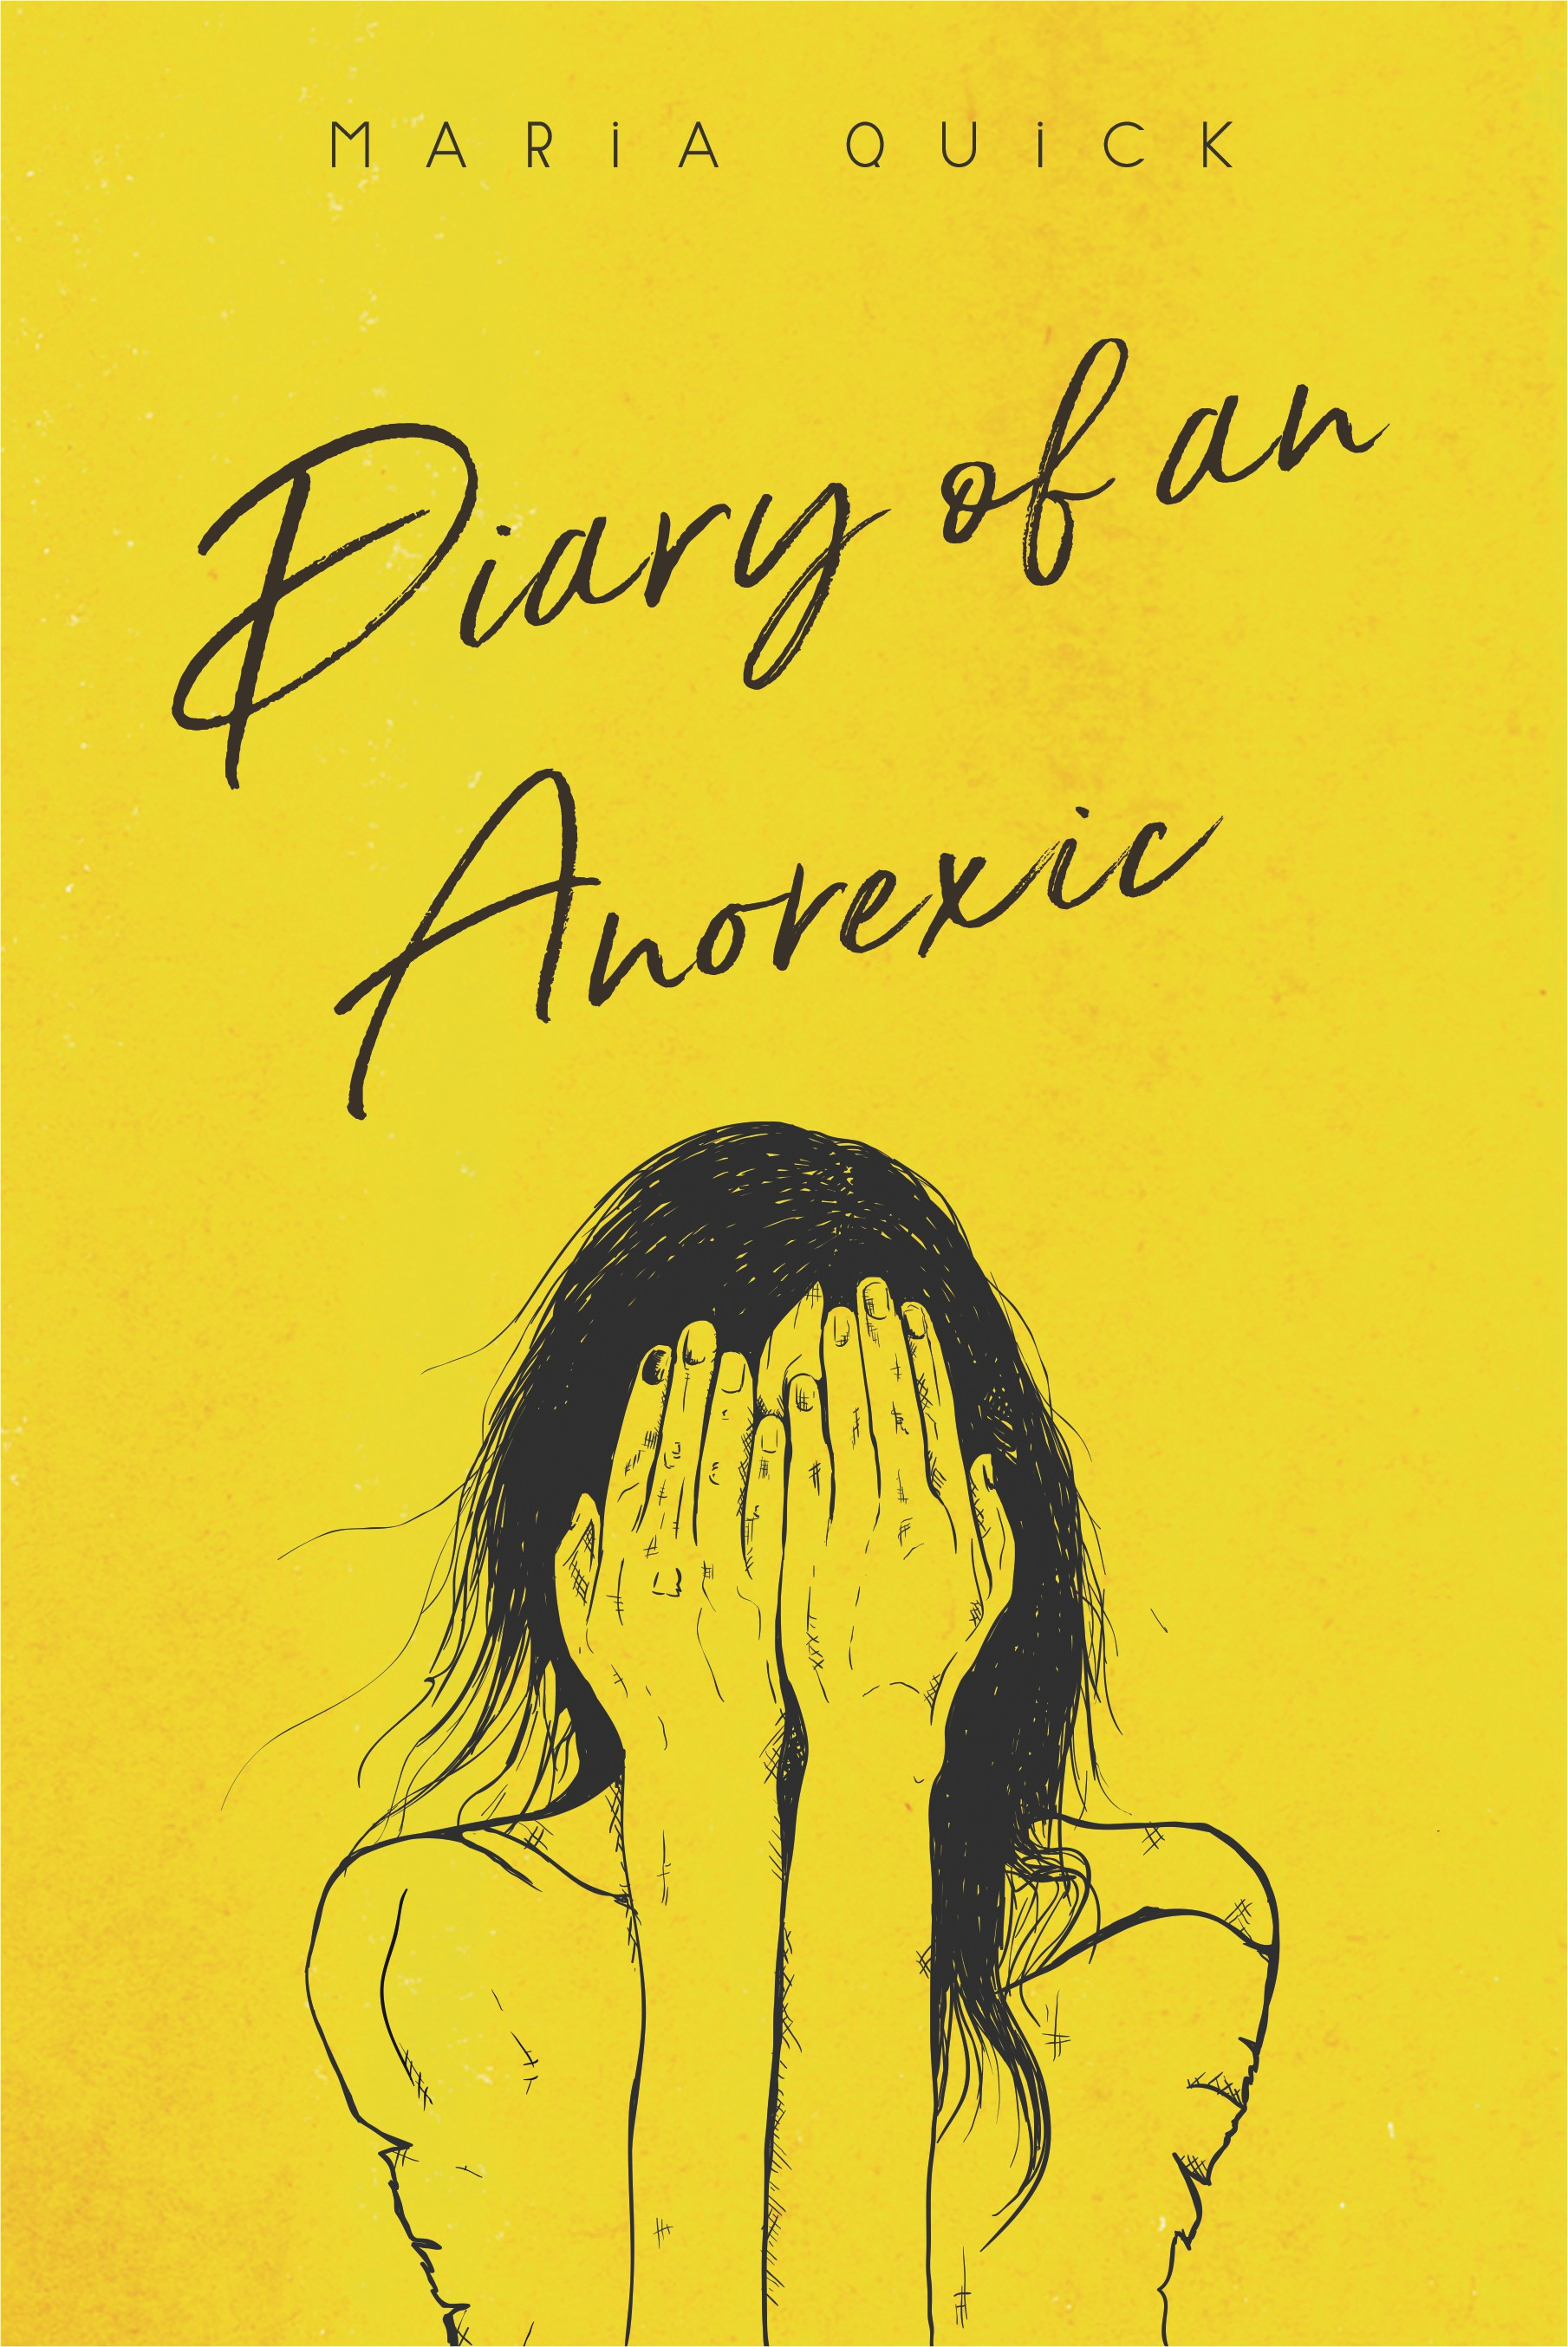 Cover needed for a fictional YA story about anorexia